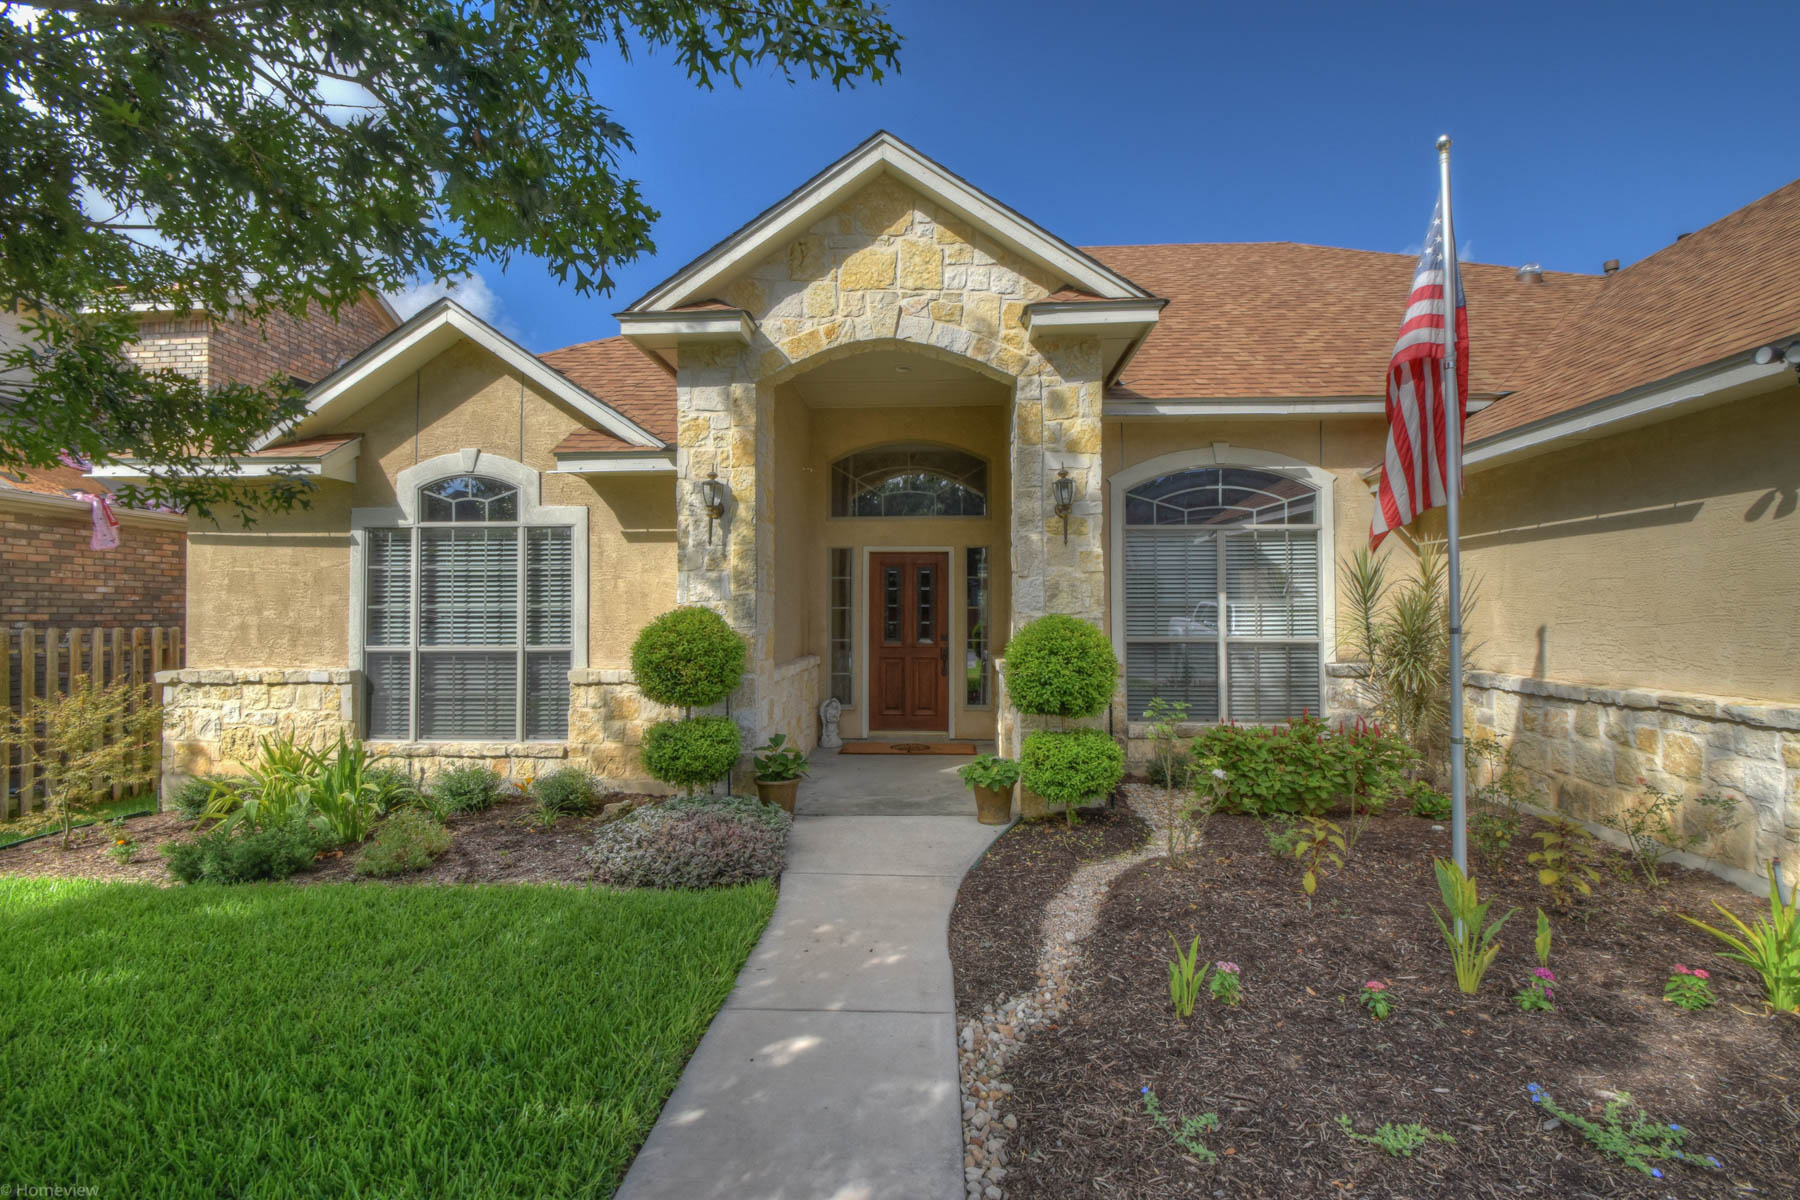 Single Family Home for Sale at Beautiful Texas Hill Country Home in Sonoma Ranch 14811 Rio Rancho Way Helotes, Texas 78023 United States